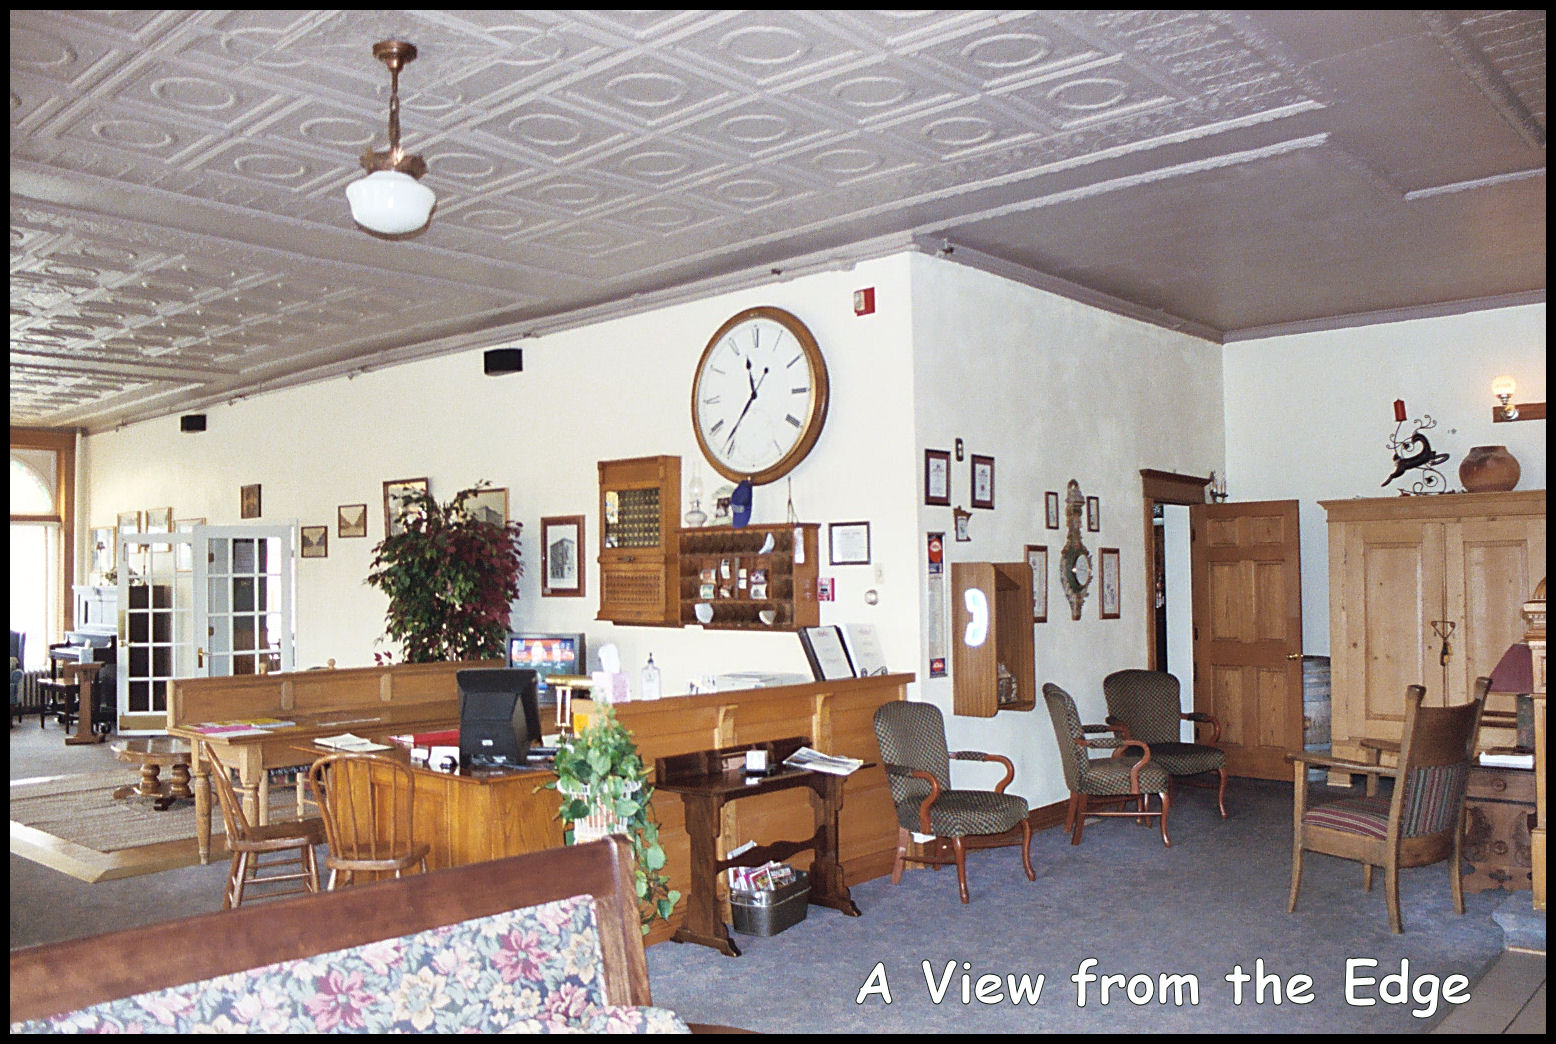 It Was Built In 1901 On The Original Site Of Sauk Centre House Town S First Hotel Which Burned To Ground 1900 Palmer